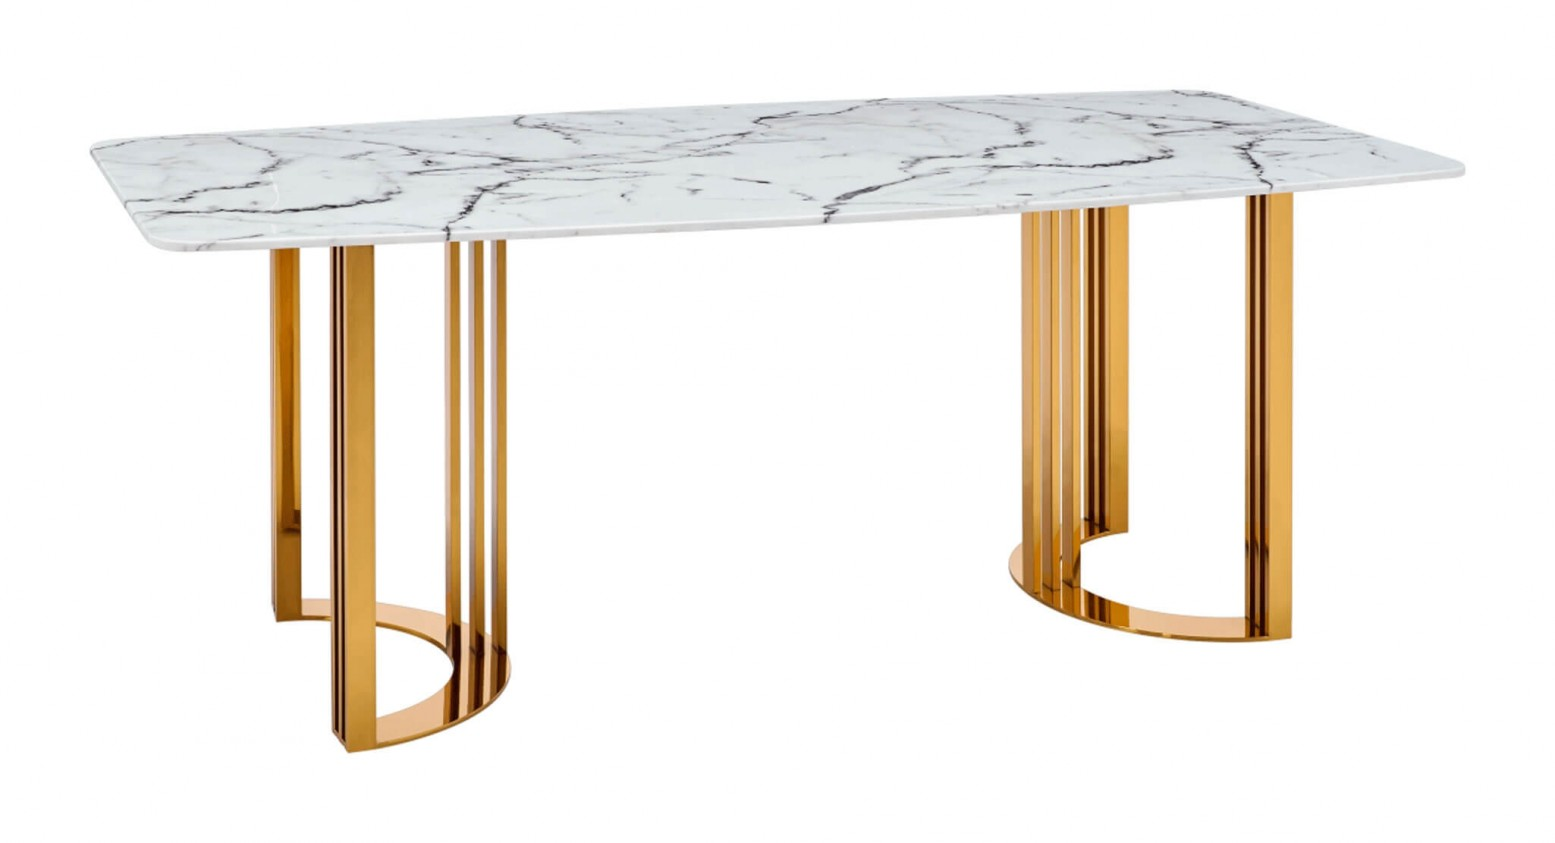 131 Modern Rectangular Marble Dining Table White Gold By Esf Furniture Sohomod Com